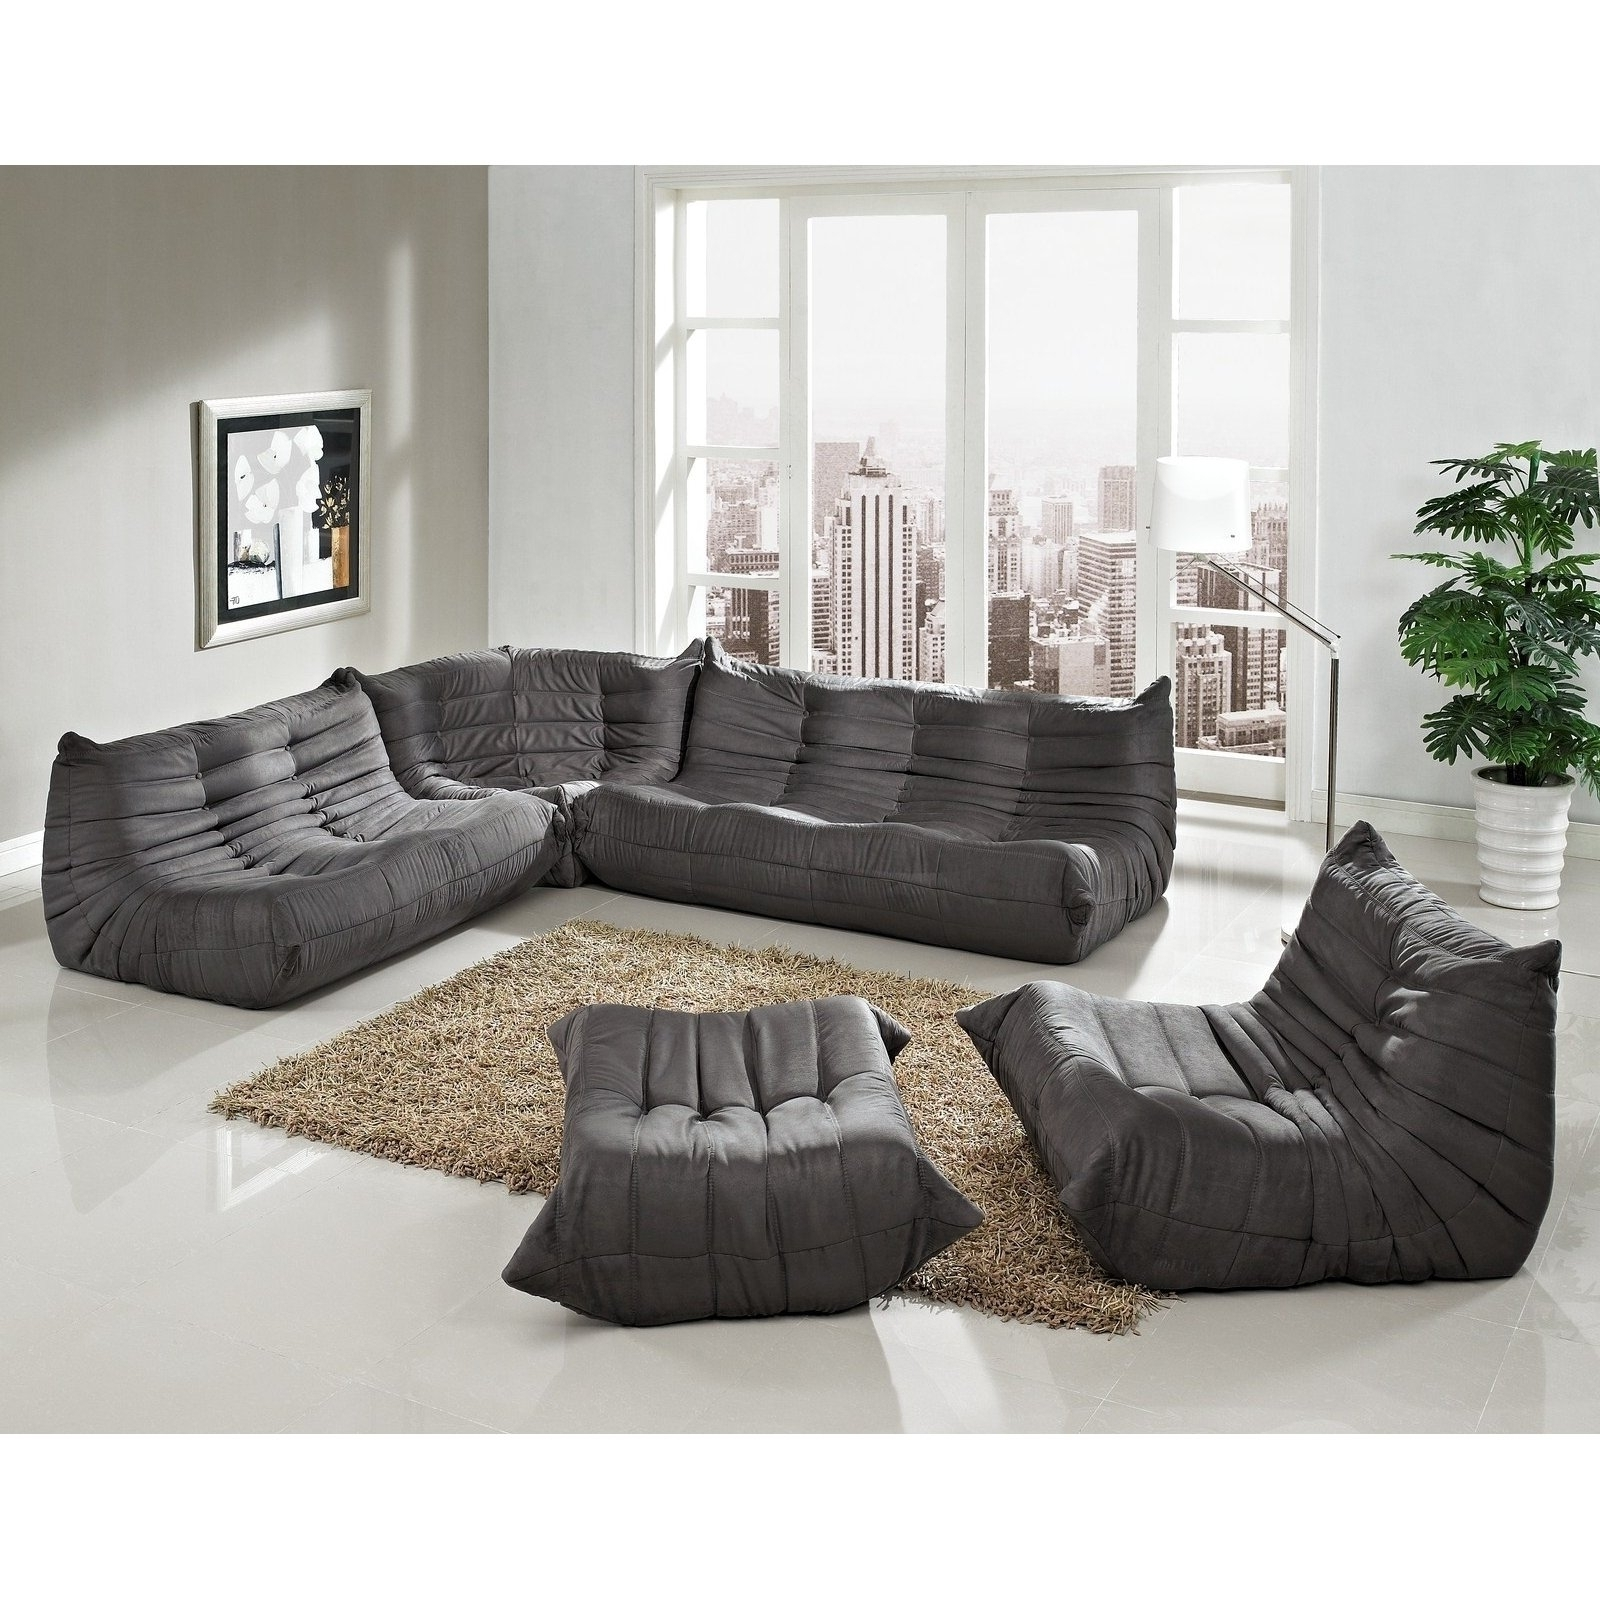 Leather Modular Sectional Sofas Regarding Well Known Living Room : Furniture Living Room Sectional Sofa Modern And (View 7 of 20)